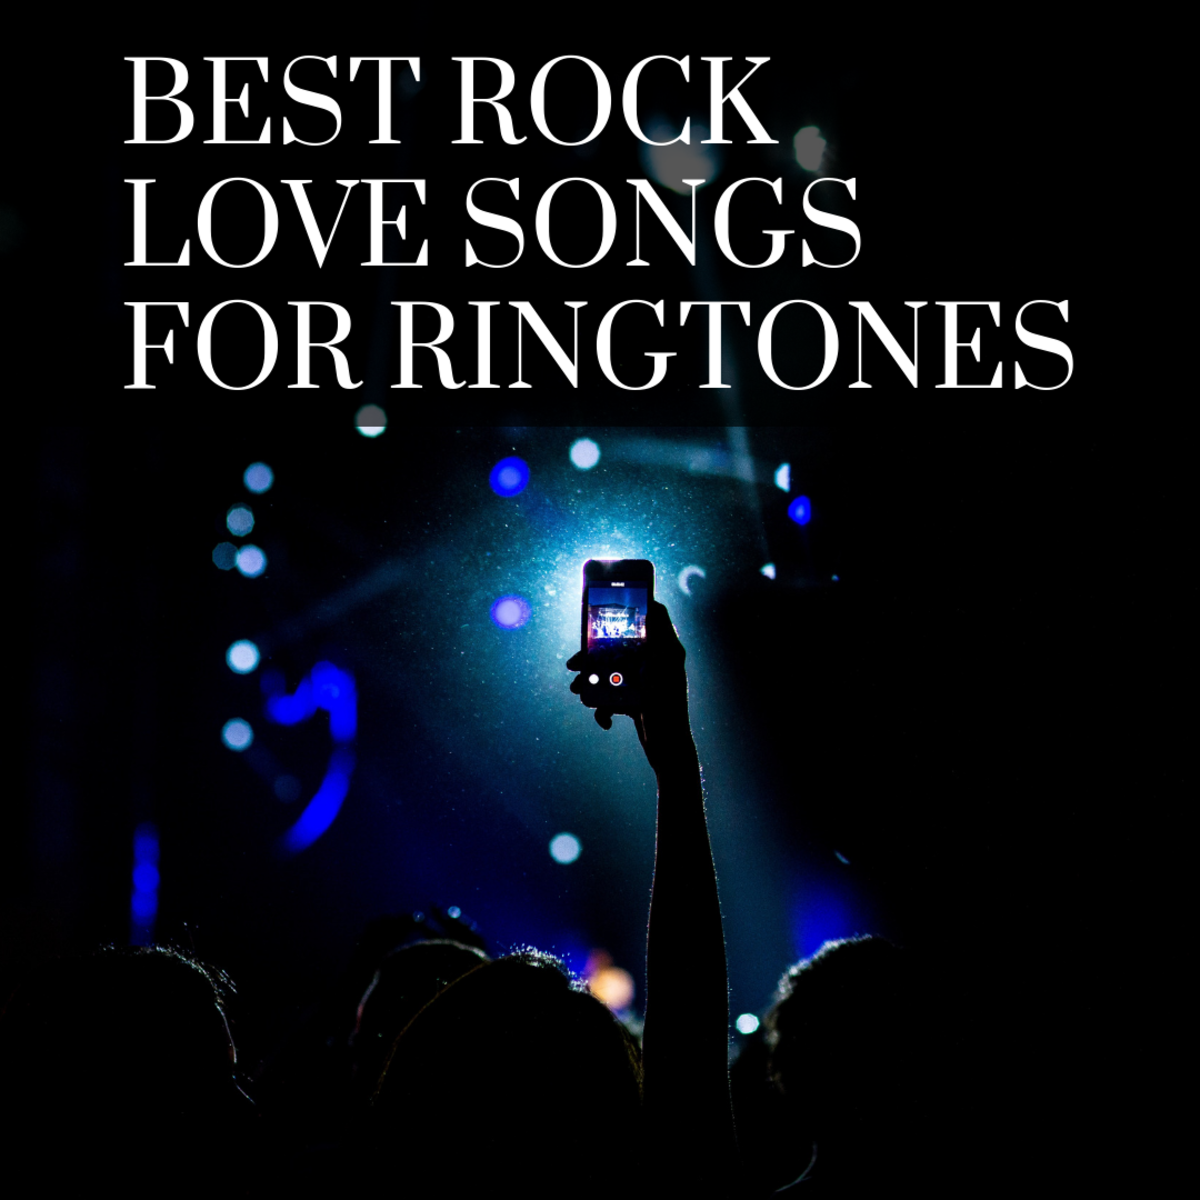 These rock love songs are perfect for your ringtone.